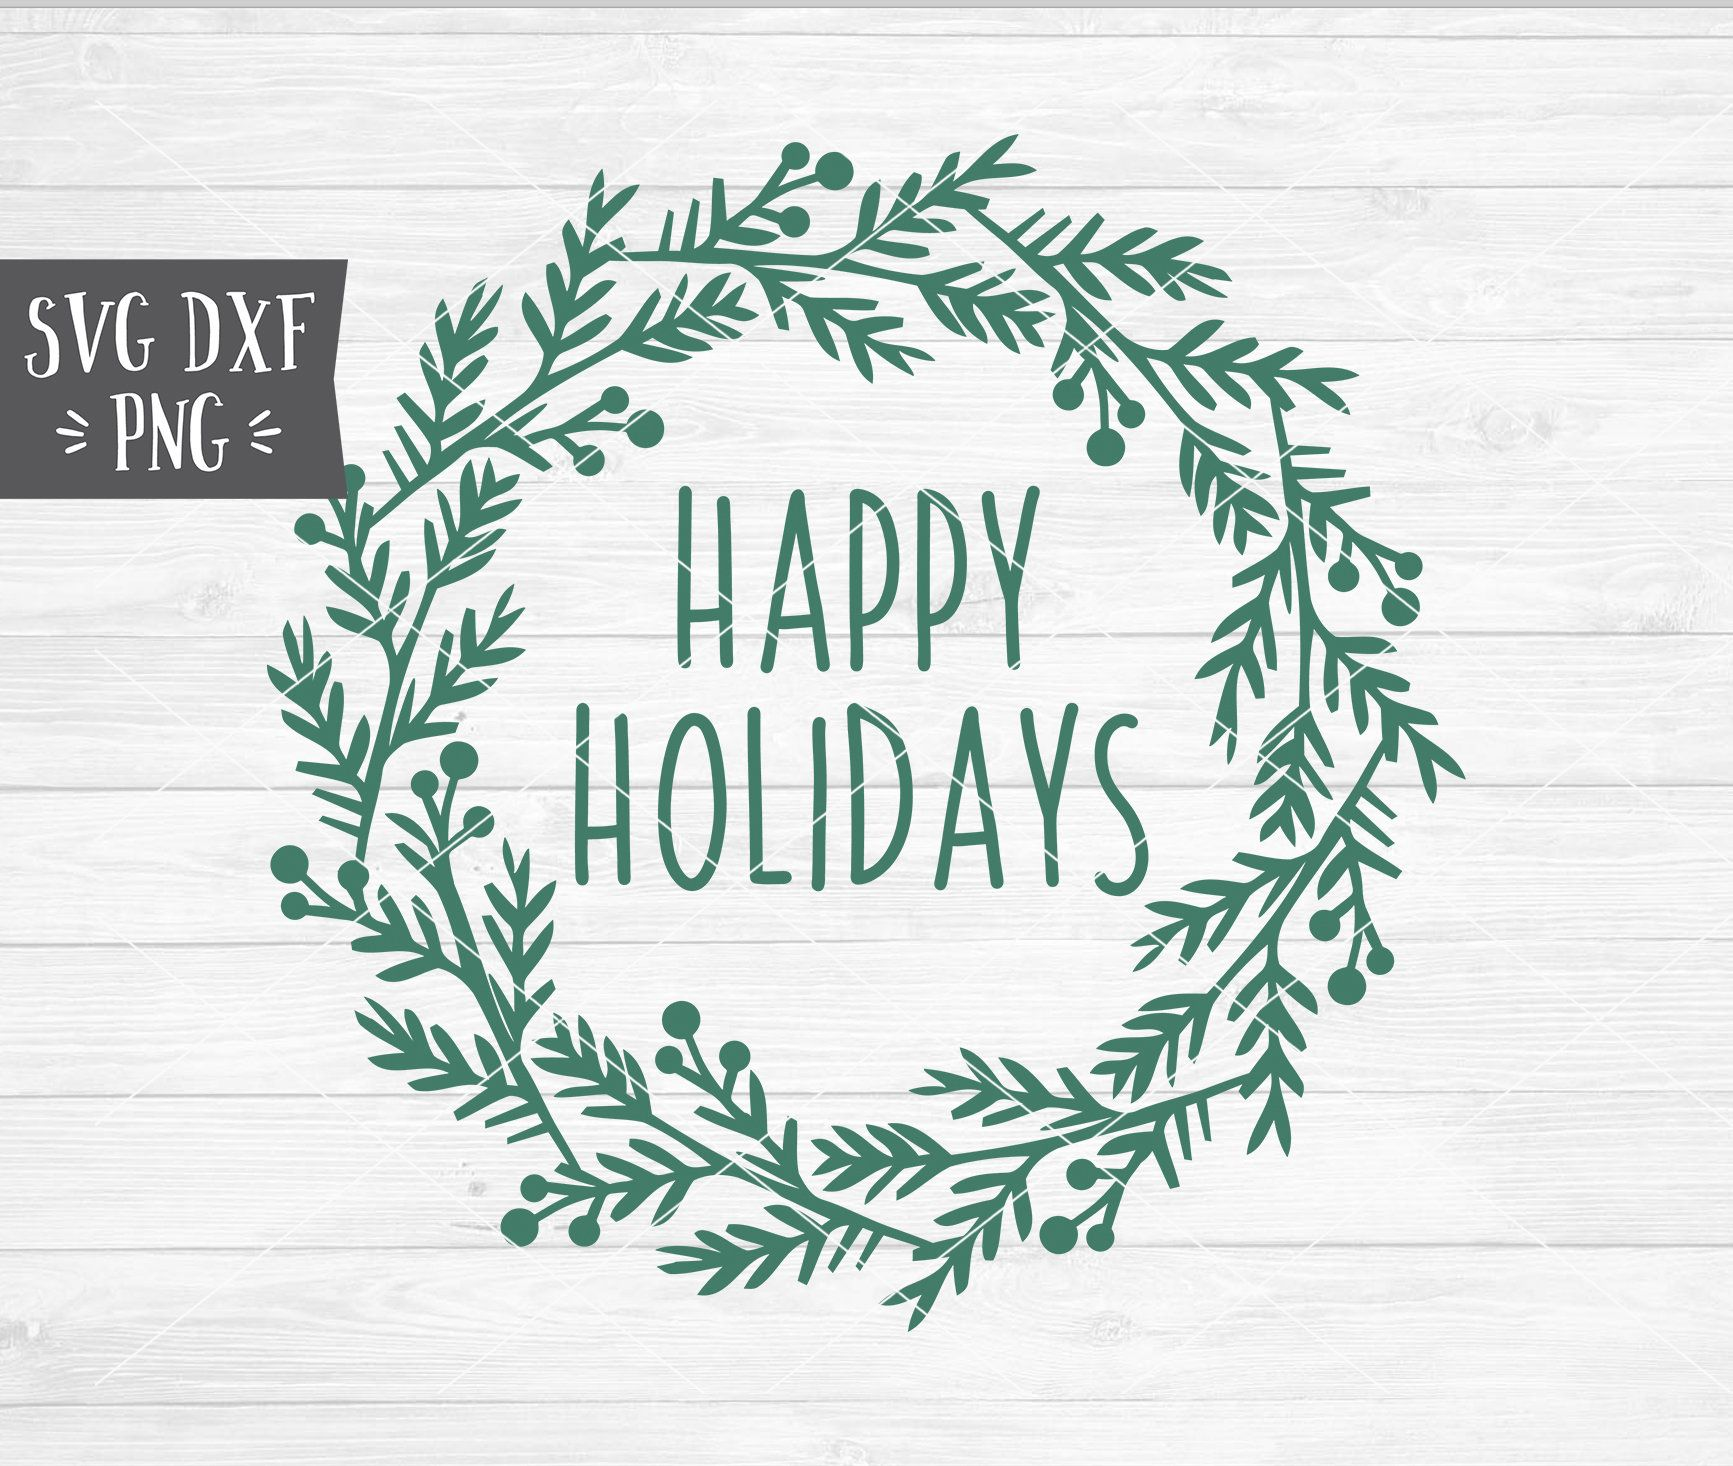 Instant Svg Dxf Png Happy Holidays Wreath Svg Christmas Svg Etsy Happy Holidays Wreath Happy Holidays Christmas Svg